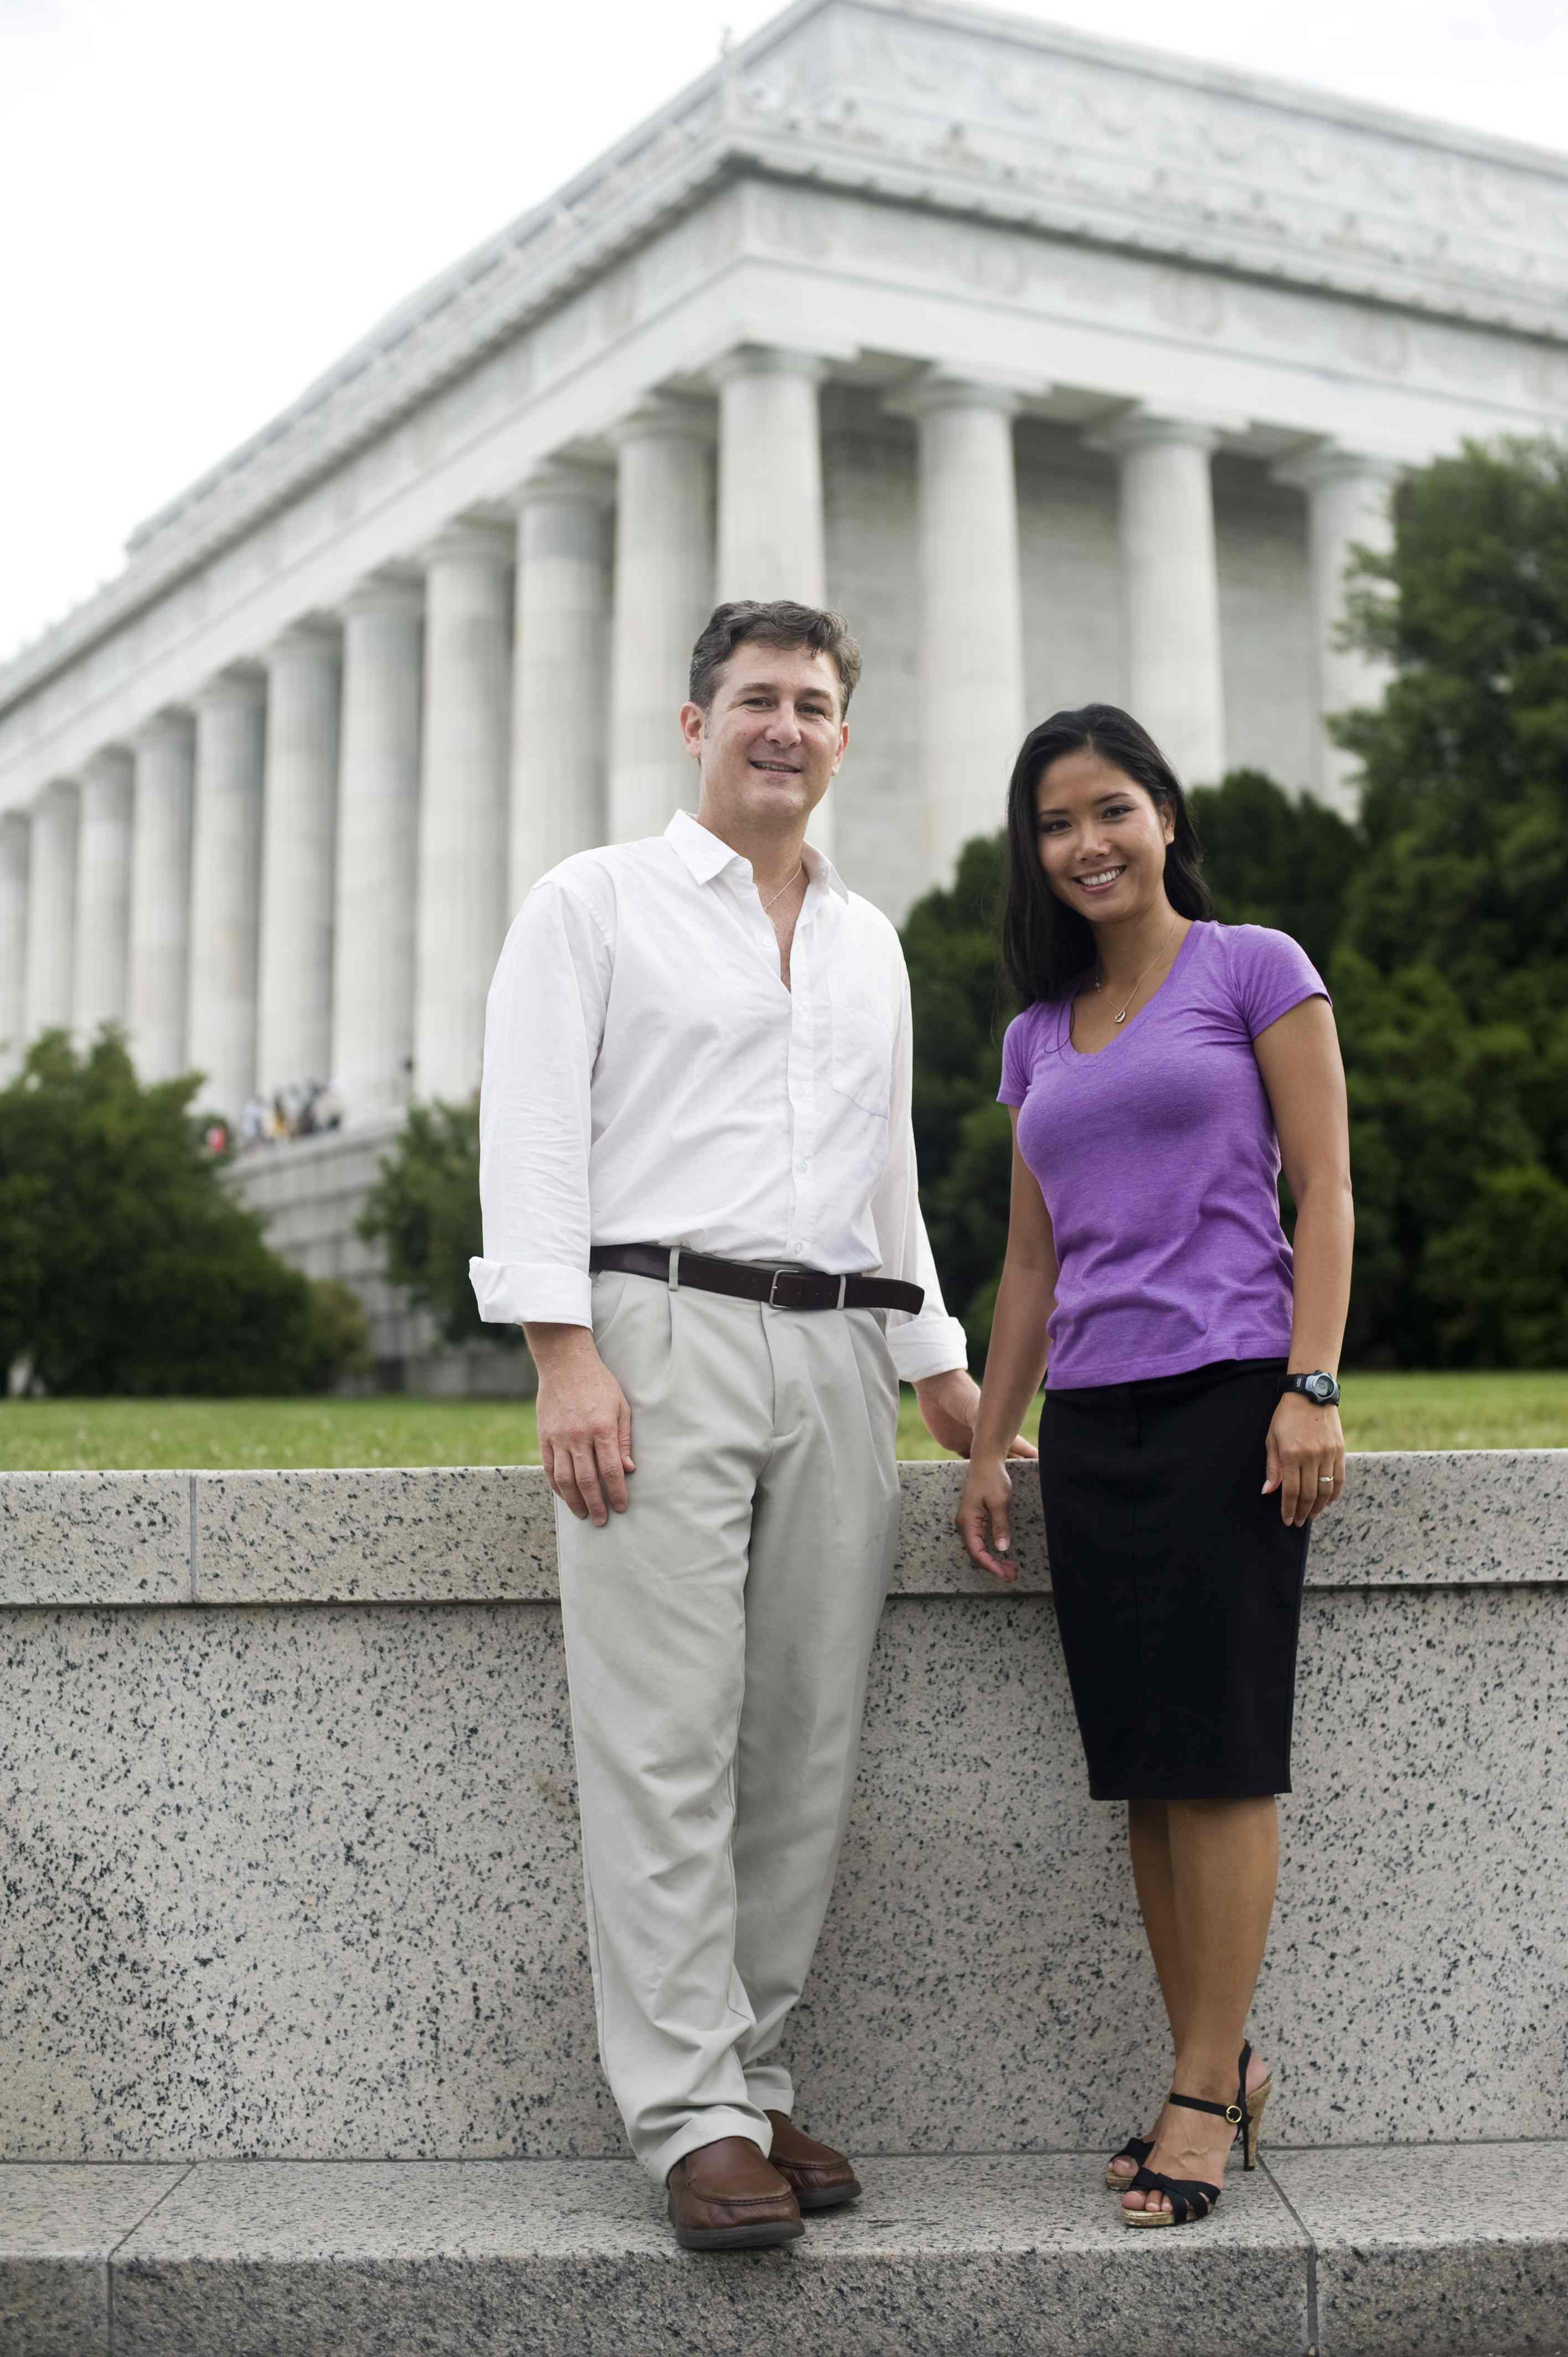 Savin Ven Johnson and her husband Wes Ven Johnson, also an LBJ graduate, in Washington, D.C.